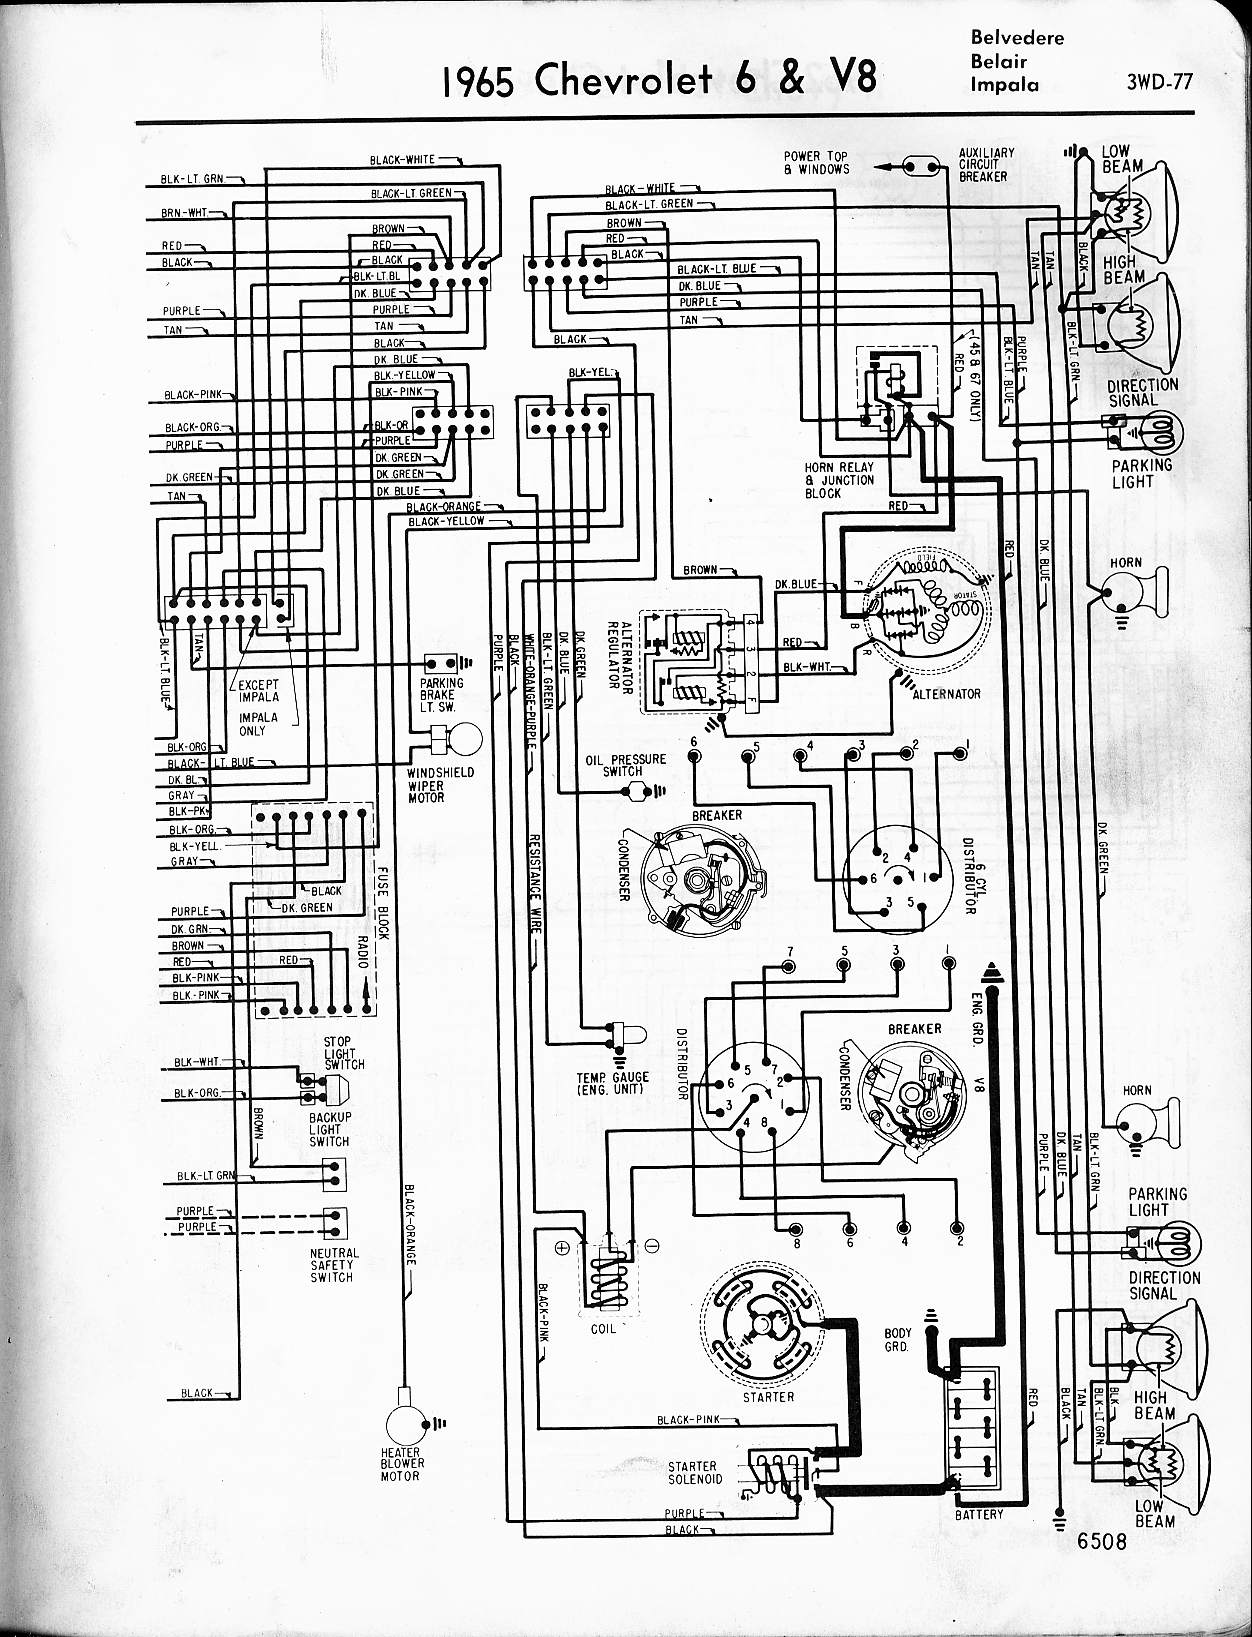 MWireChev65_3WD 077 1966 impala wiring harness 1961 impala wiring harness \u2022 free 2012 impala wiring diagram at arjmand.co